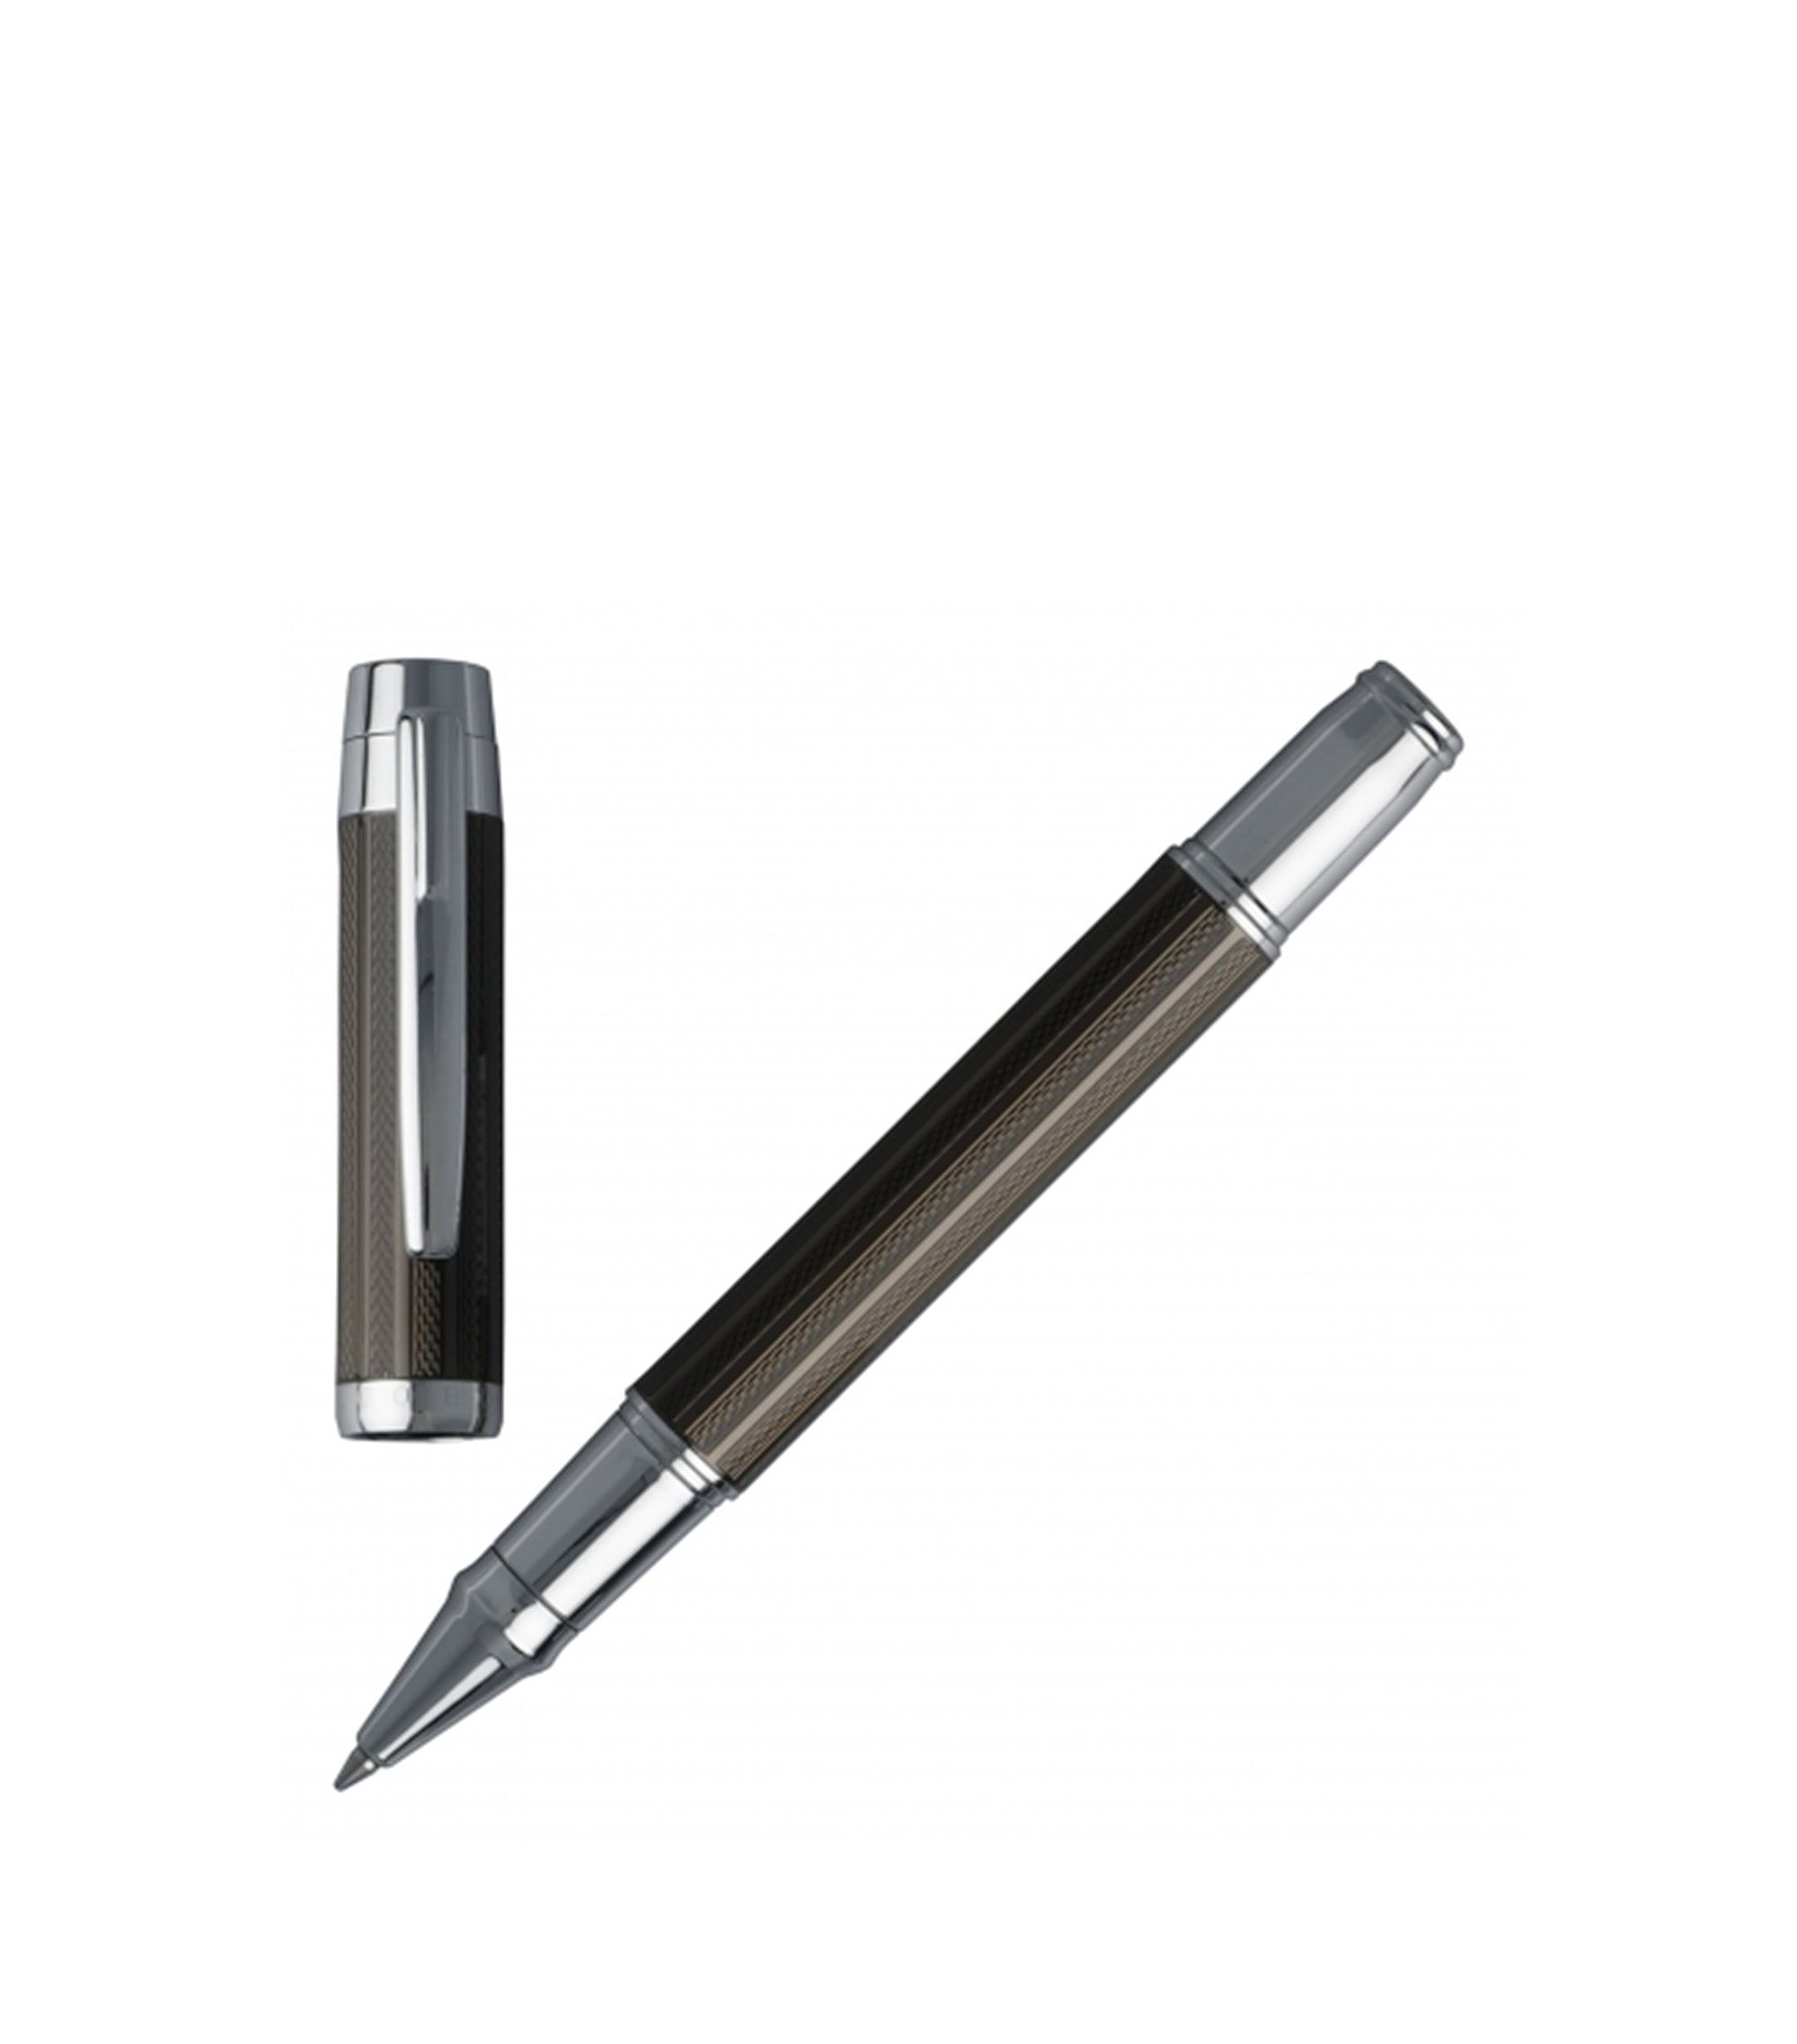 Rollerball pen with black technical crafted surface, Khaki